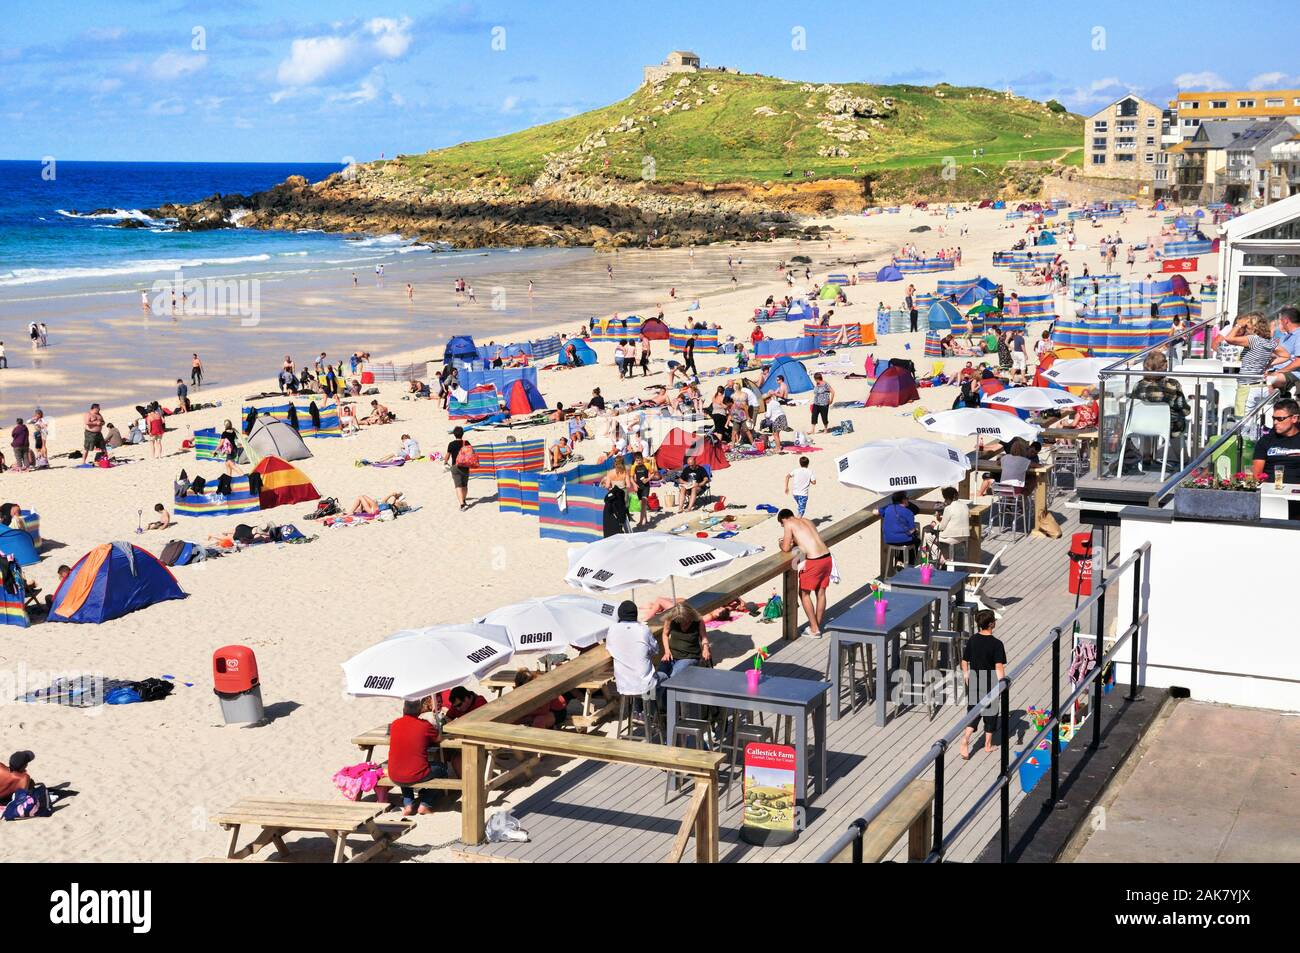 Holidaymakers enjoying the sun on Porthmeor beach in high summer at the popular seaside resort of St Ives in Cornwall, England, UK Stock Photo